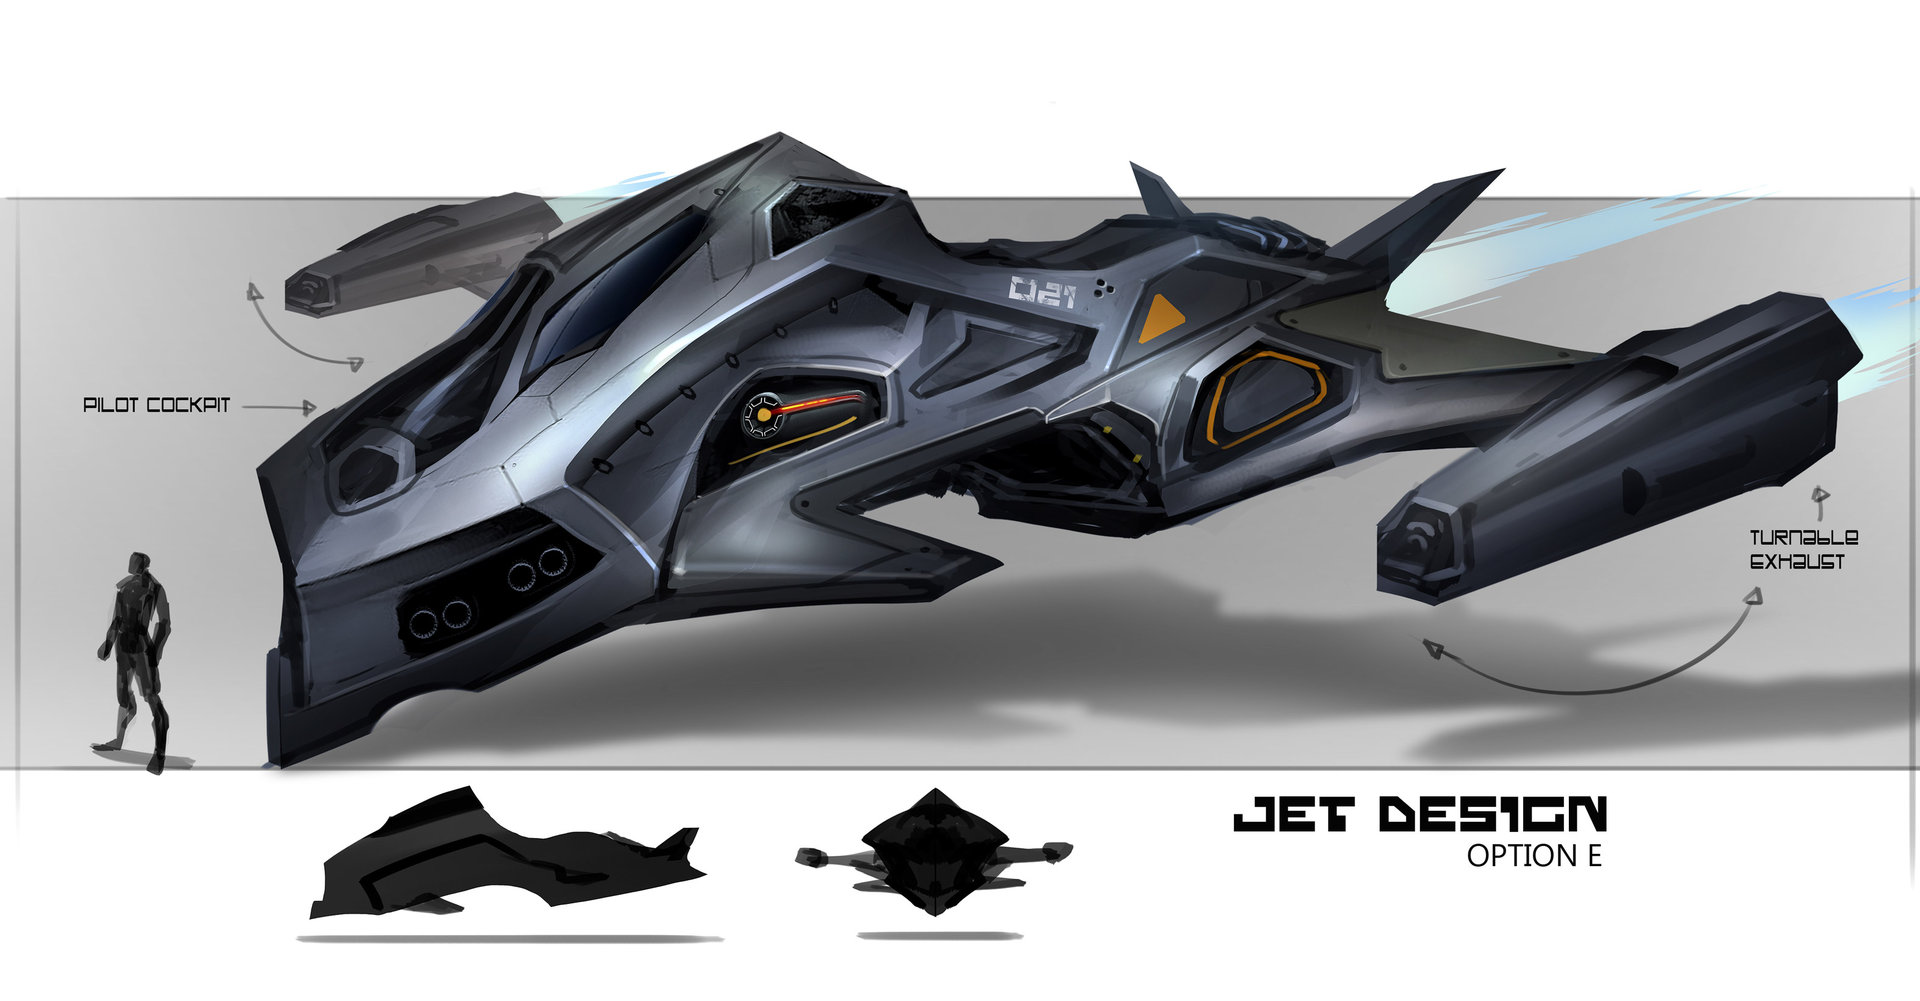 Jeremy chong jet design optione